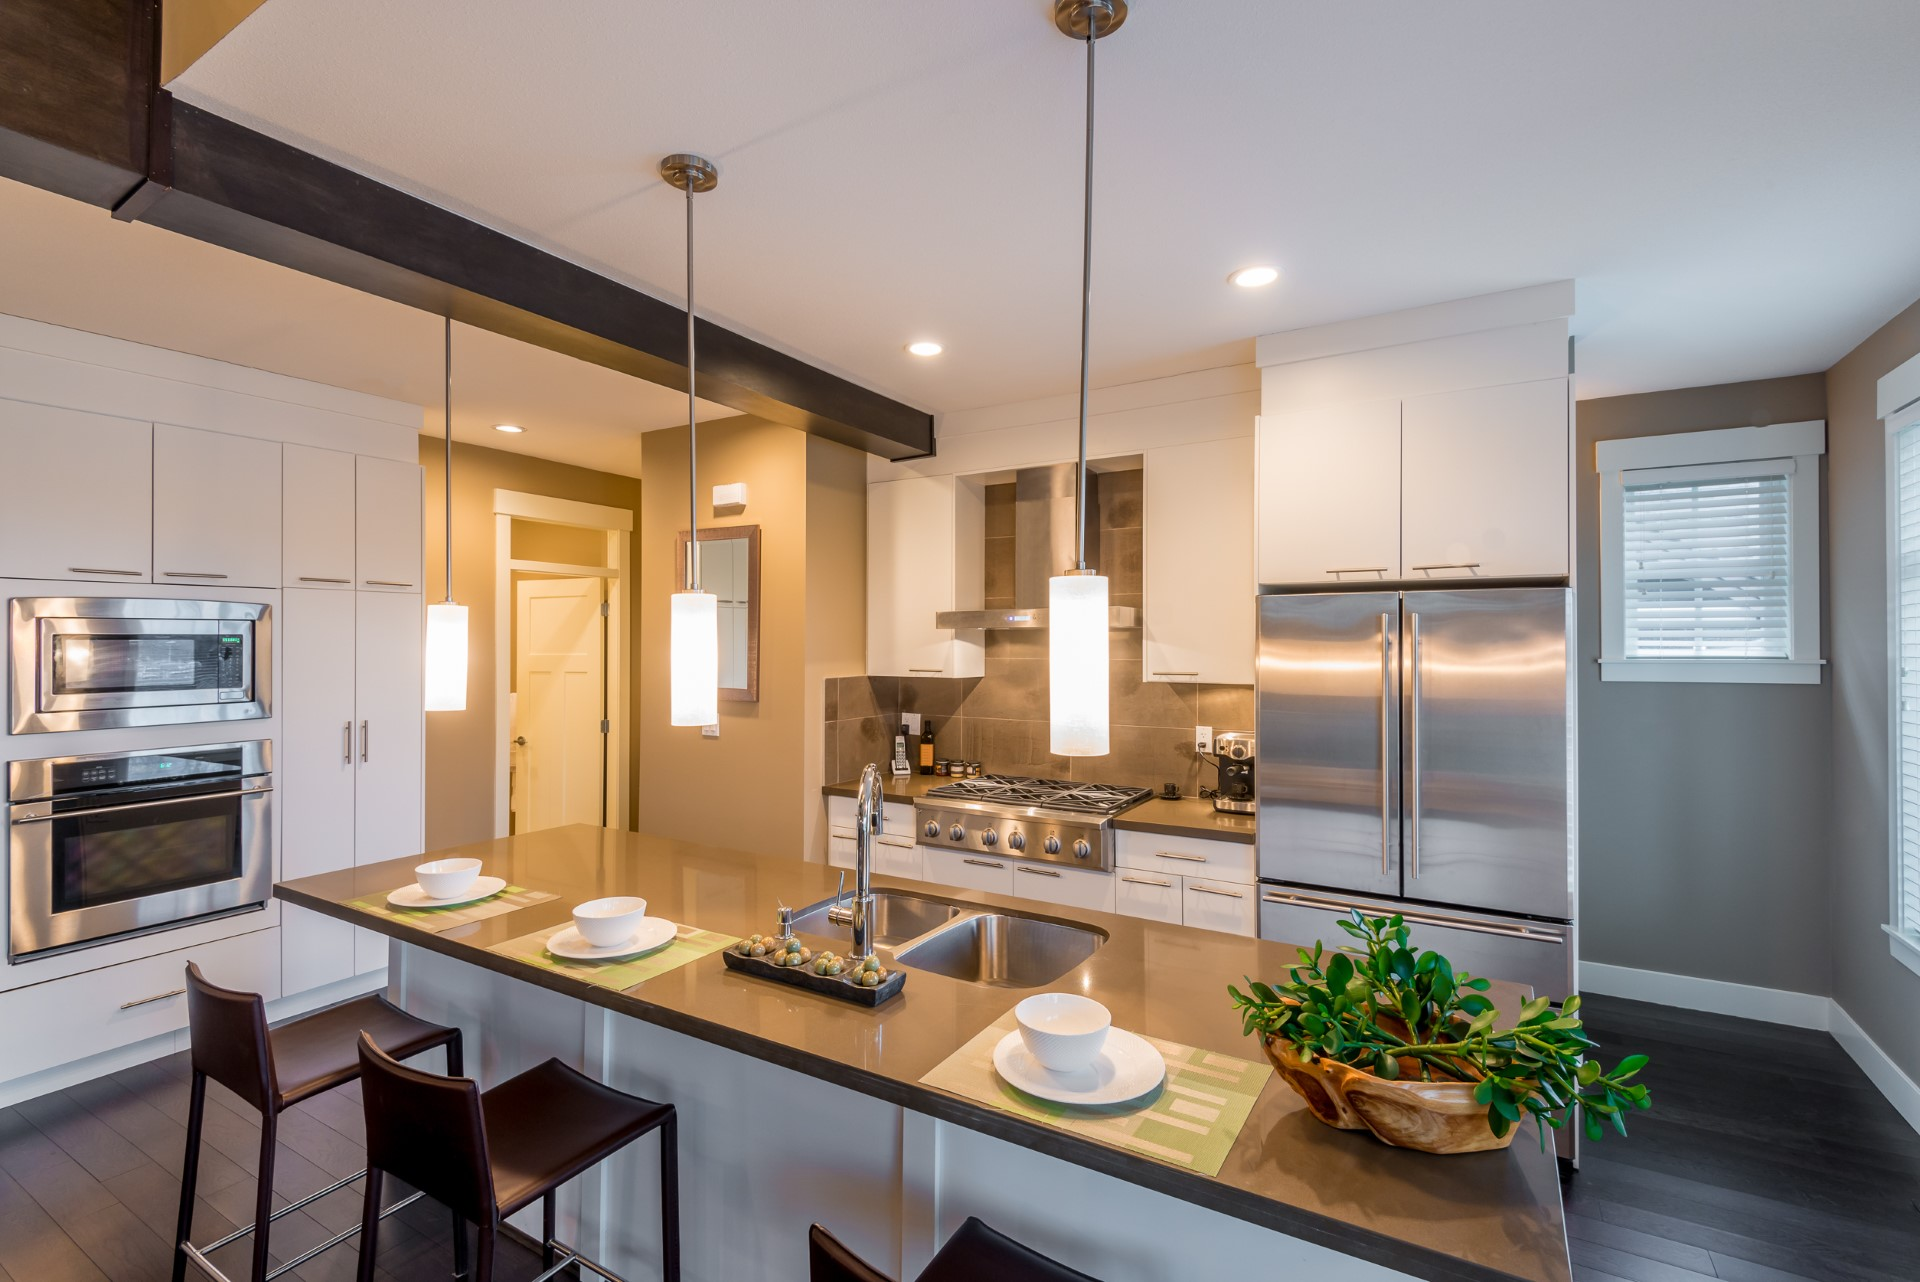 Definitely a very hard color set up to conquer, this tri-color paint job if done properly can make a kitchen stand out like no other. Updated with all the modern stainless steel appliances, this kitchen is a fantastic decoration that makes it home.